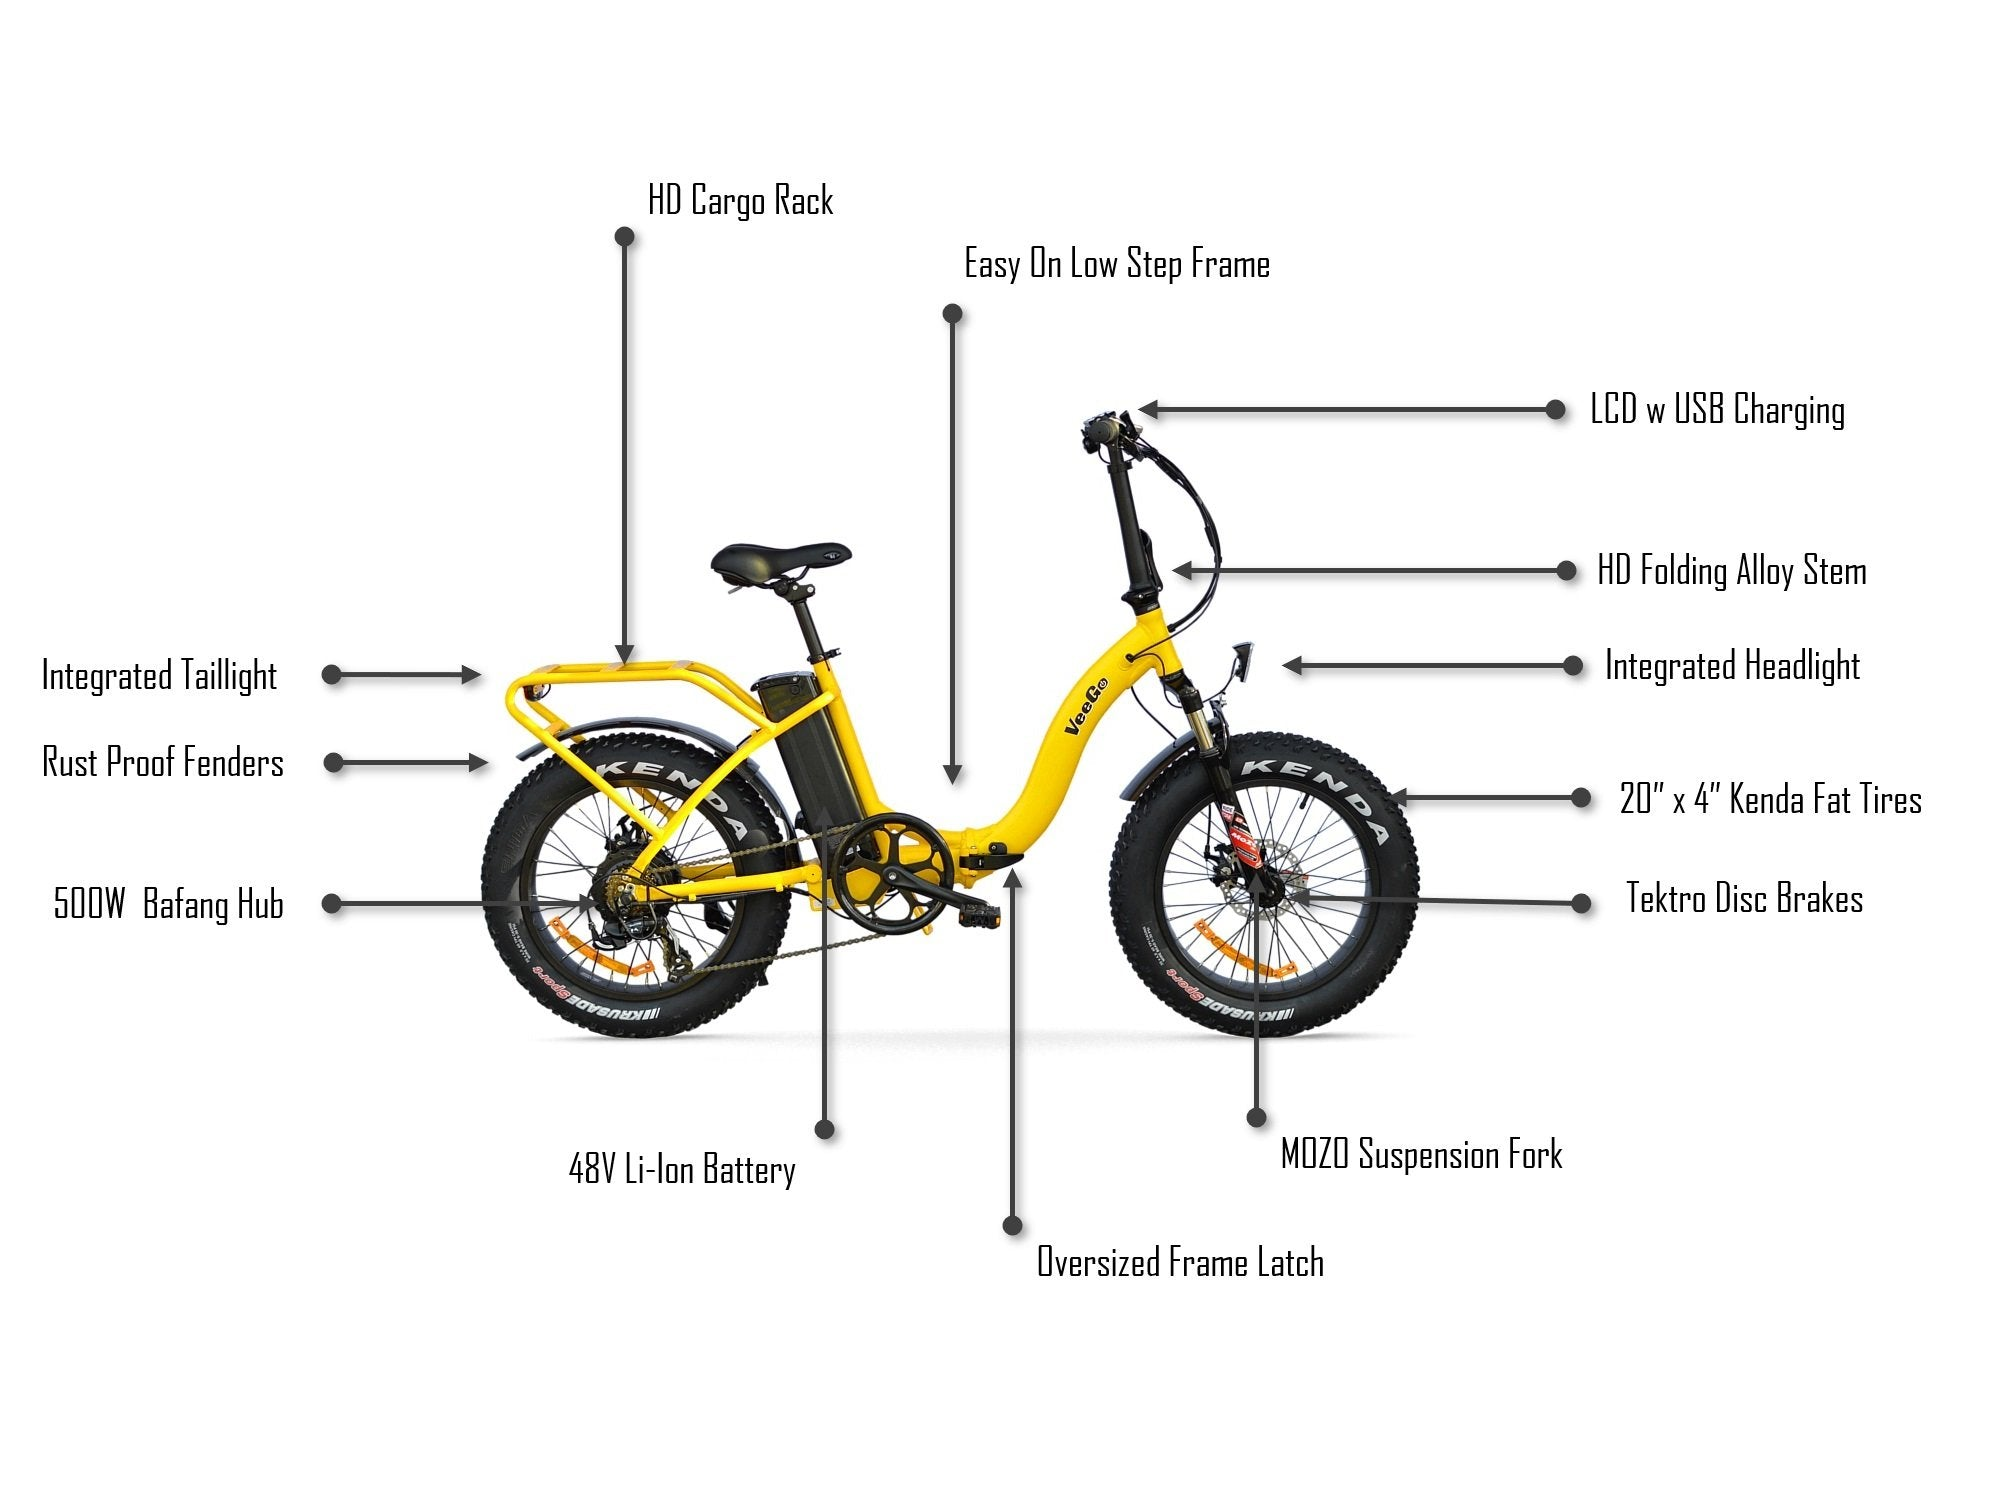 Veego Folding Fat Tire Electric Bike Fyxation Low Power Car Usb Charger